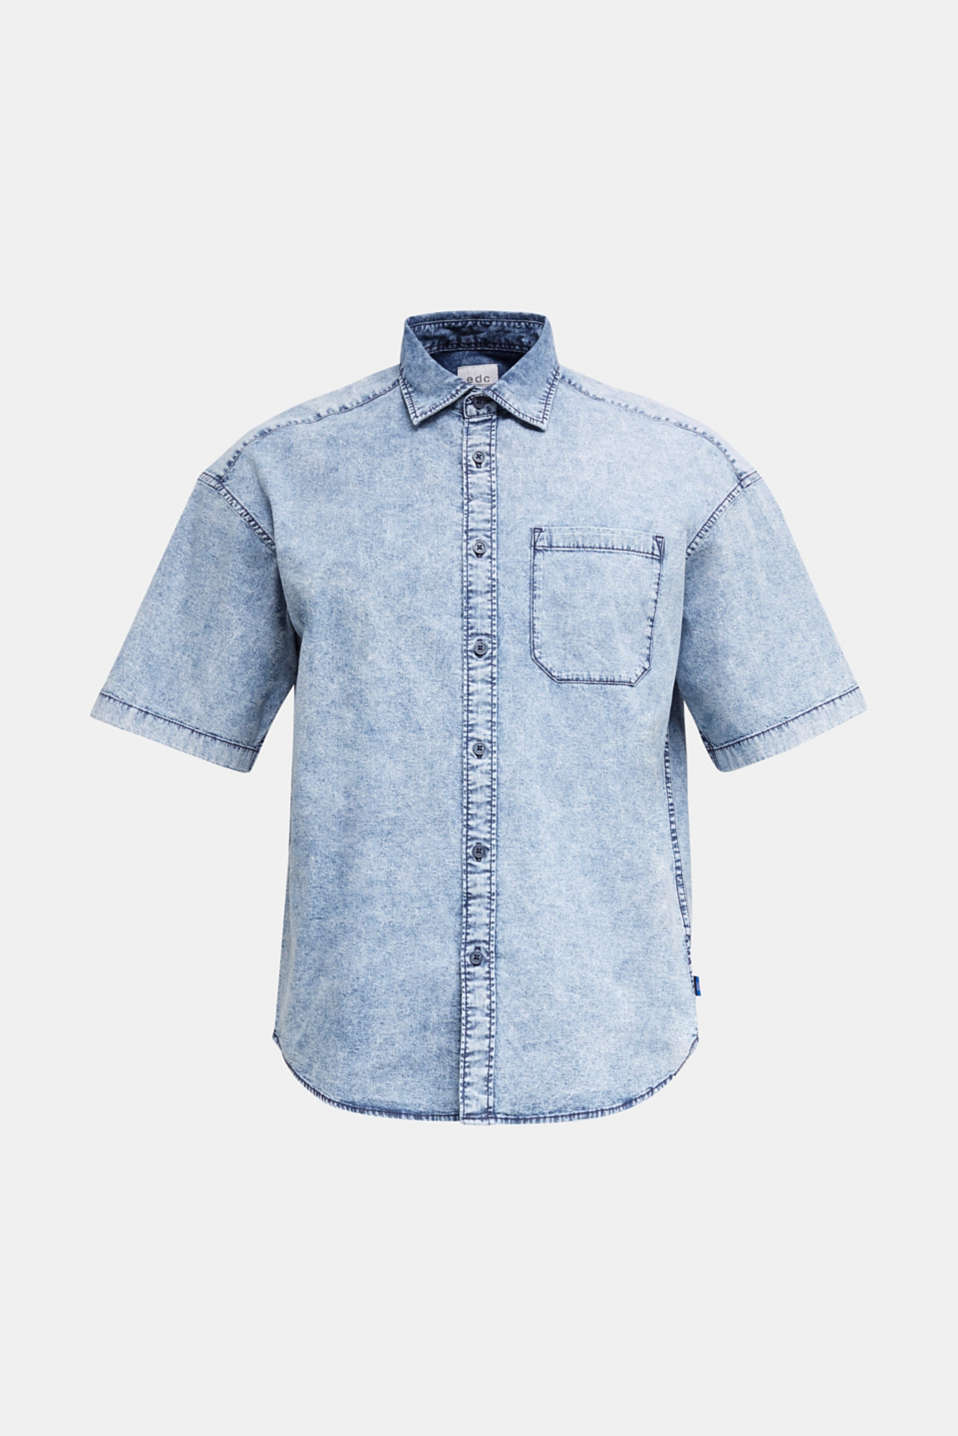 Shirt in a vintage look, BLUE BLEACHED, detail image number 8